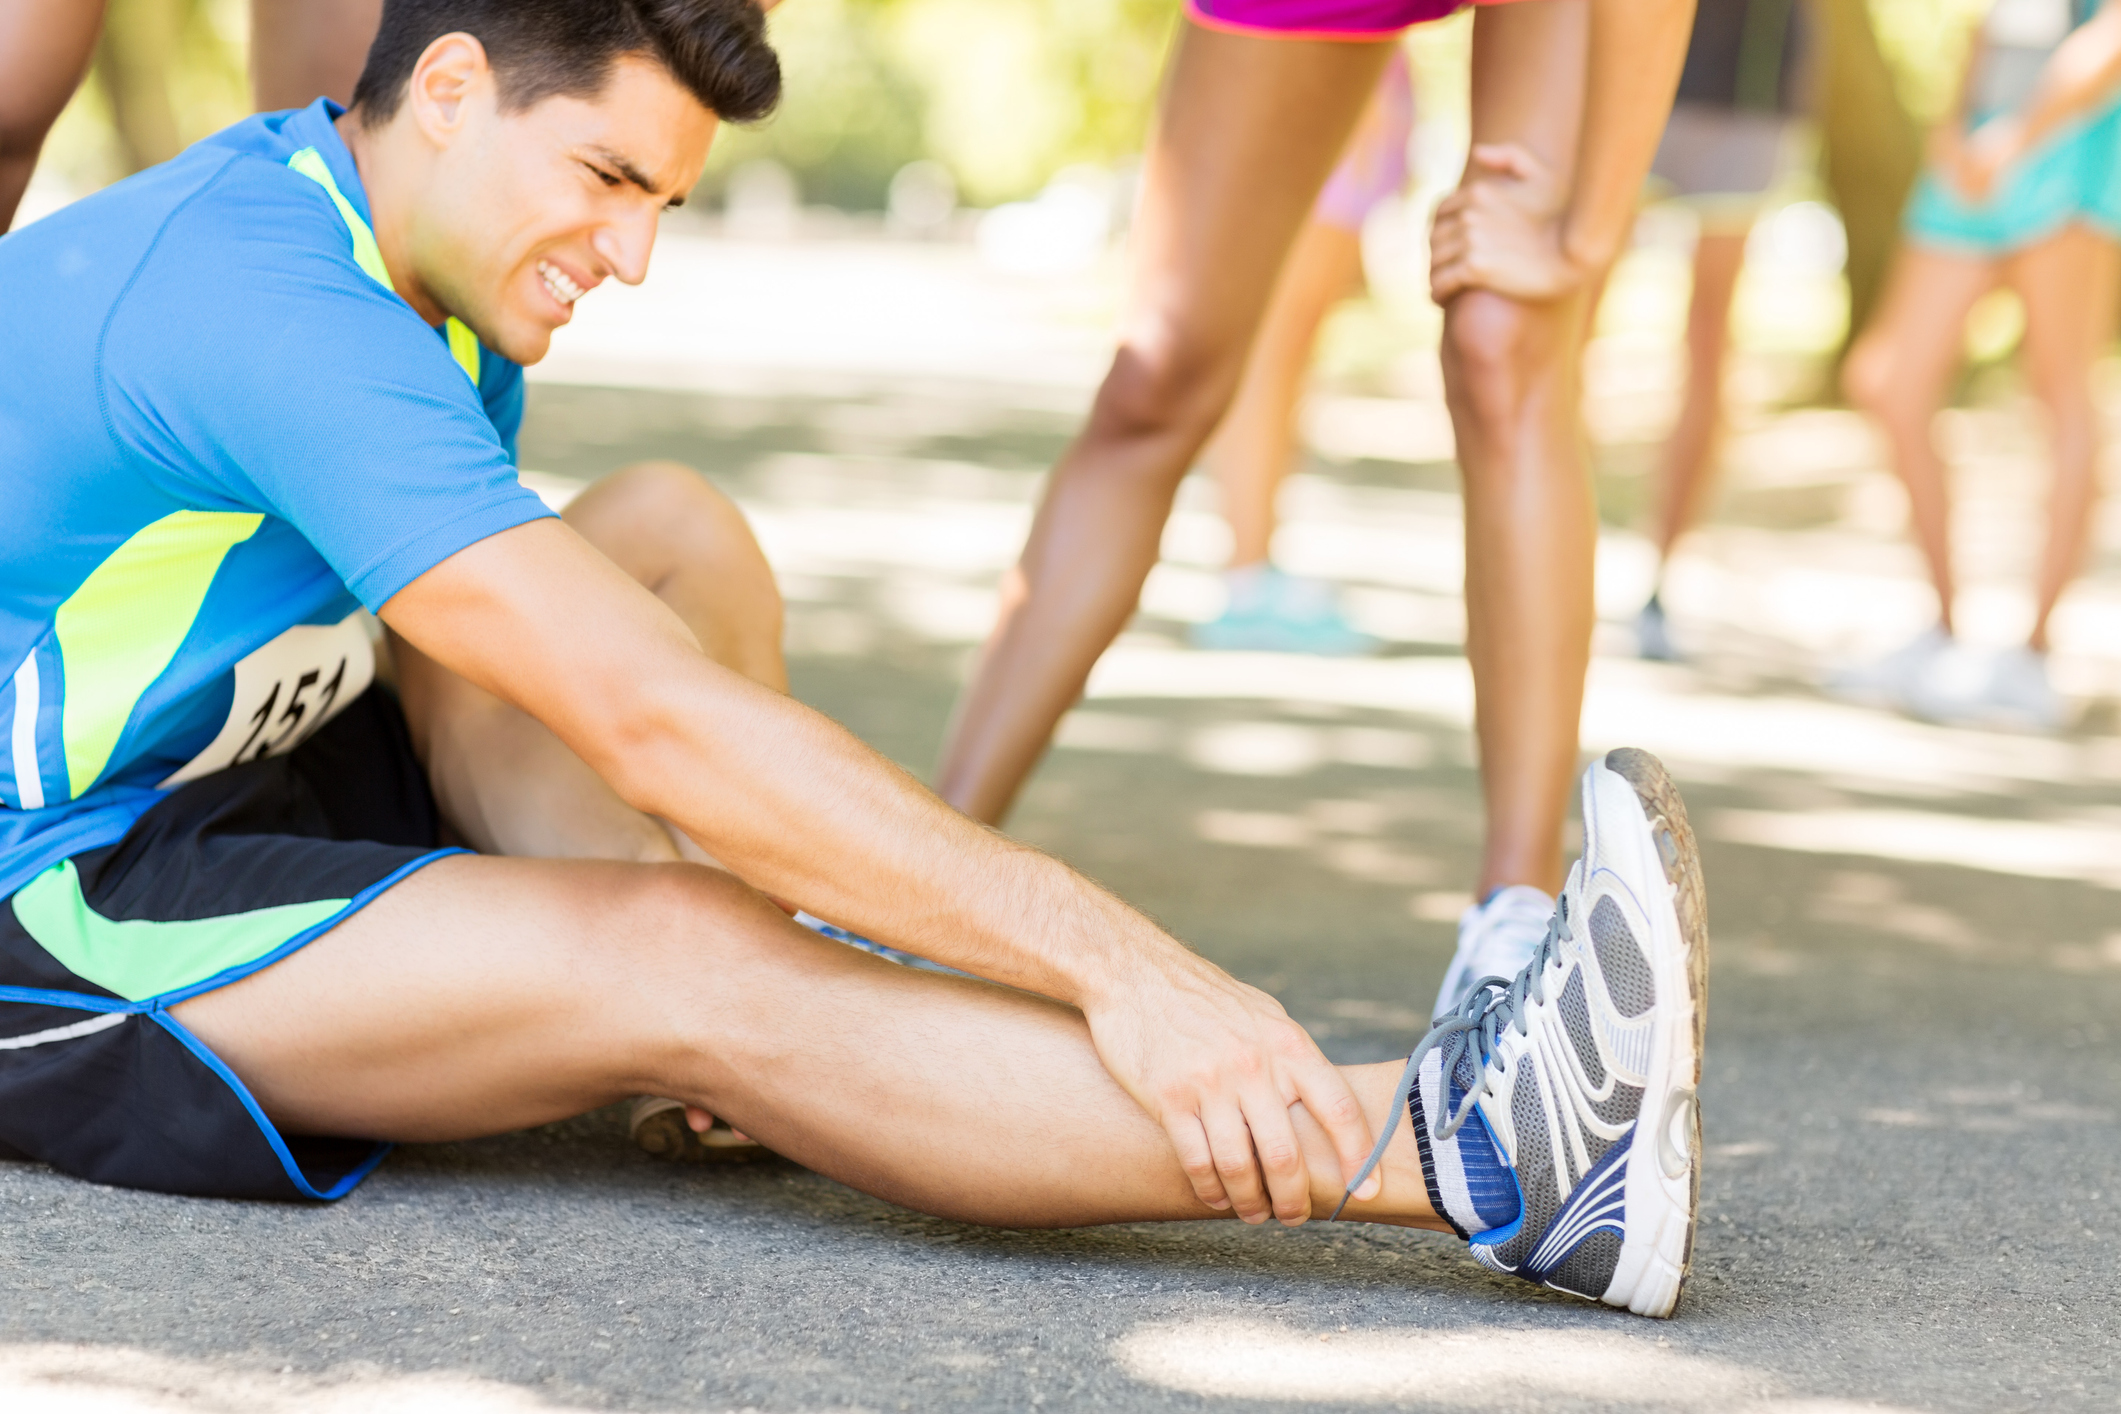 ANKLE SPRAINS: WHEN SHOULD I BE CONCERNED?